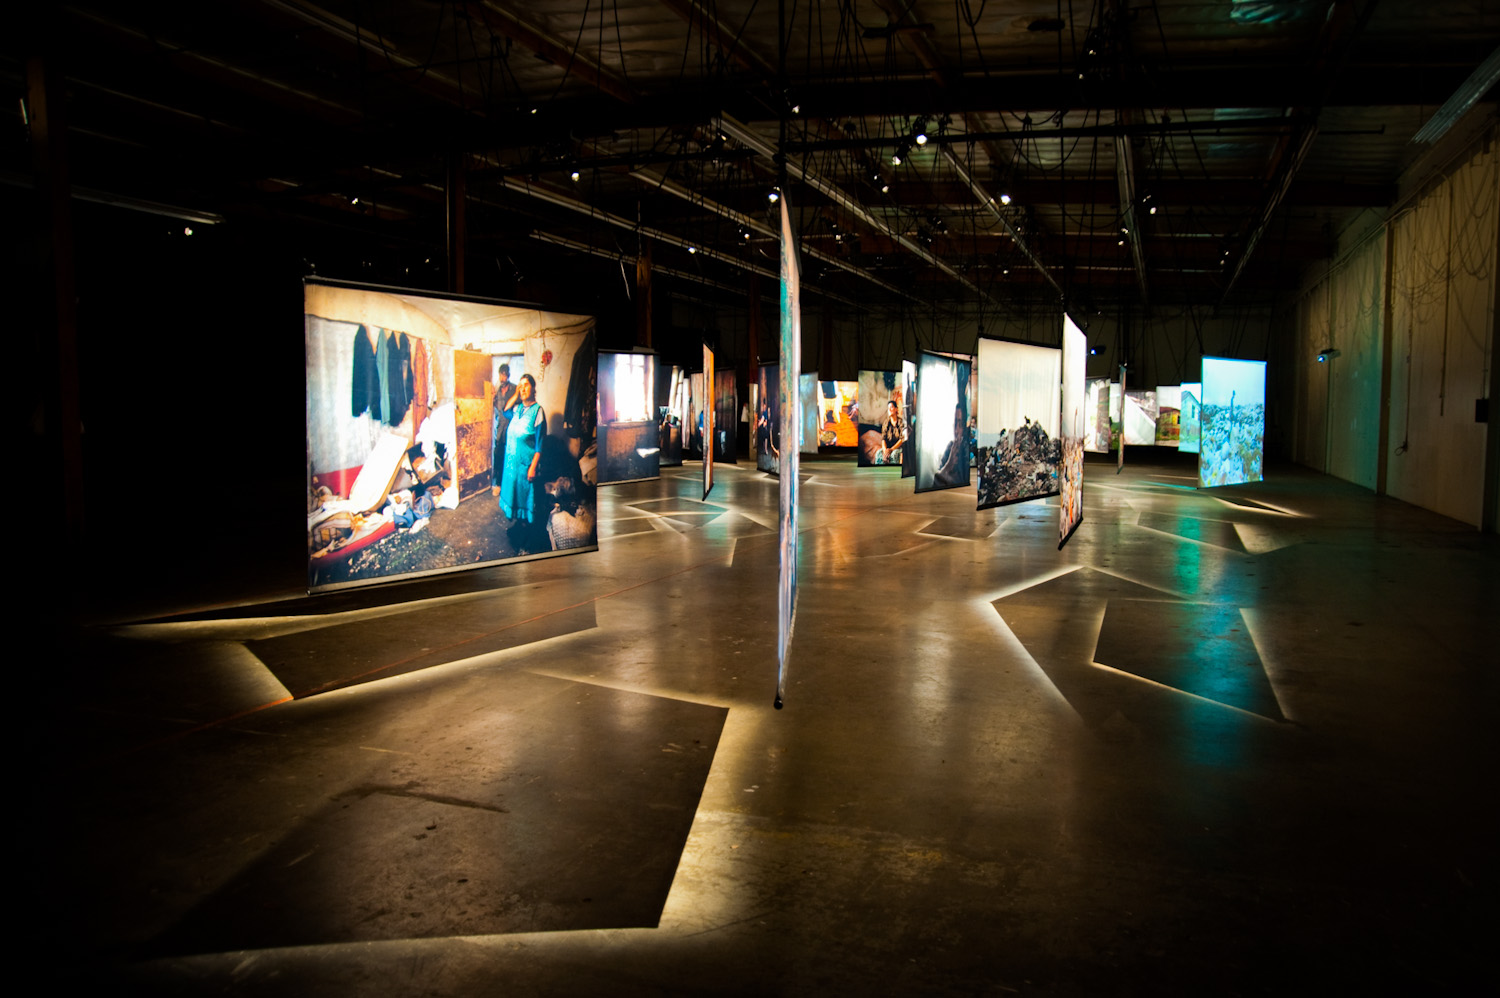 Click  HERE  to listen to Shirley Jahad's KPCC/NPR news story about this exhibit.